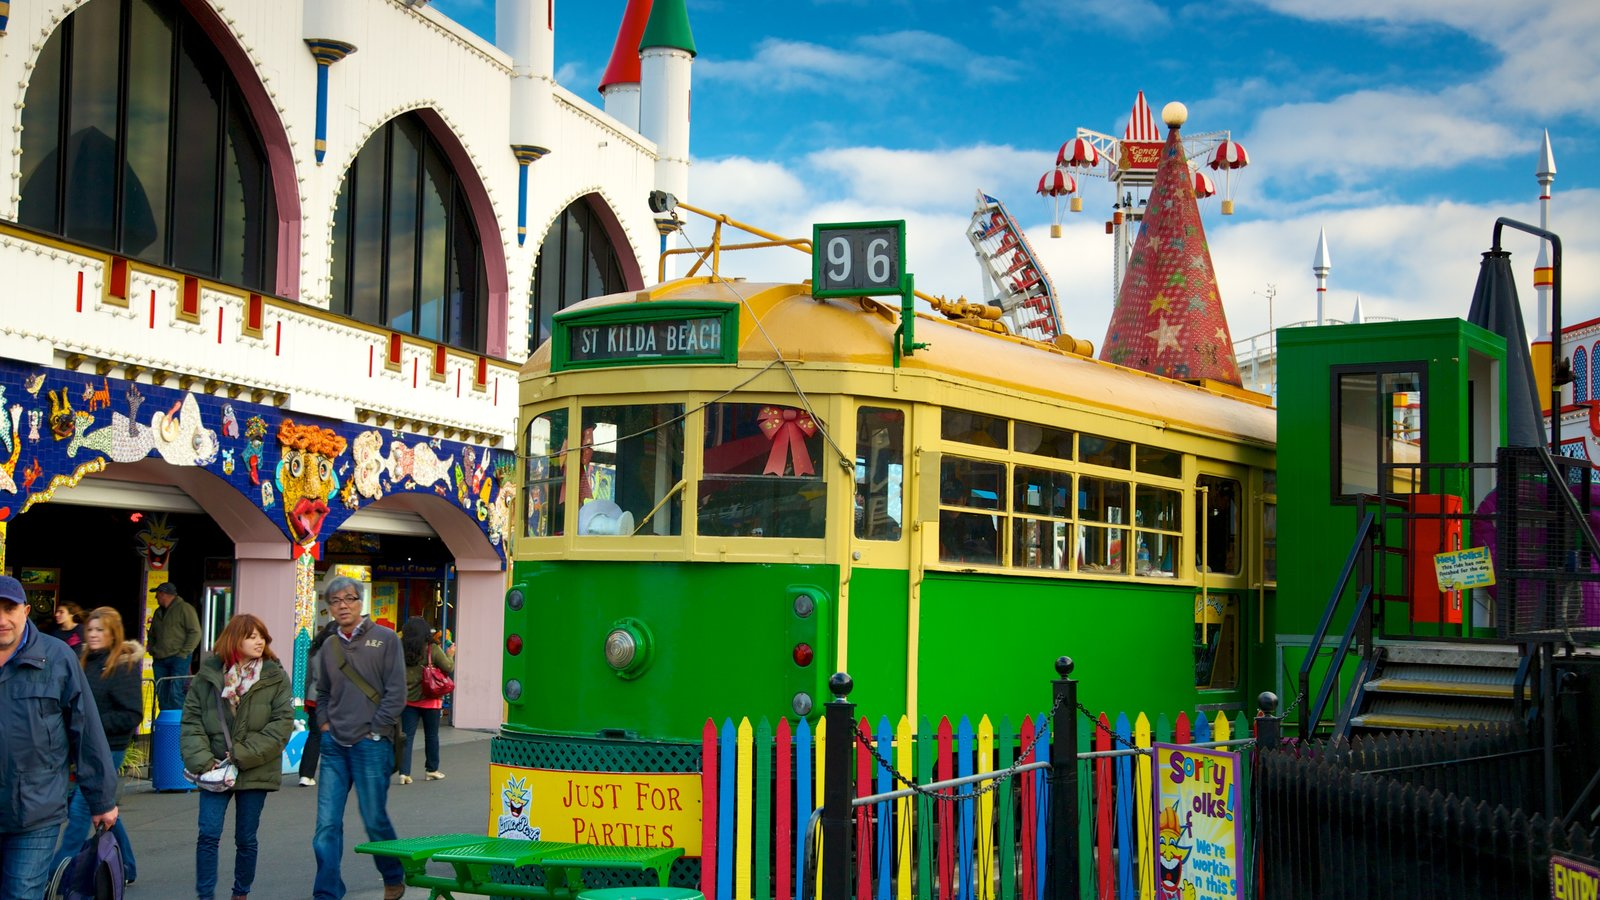 Luna Park which includes rides and railway items